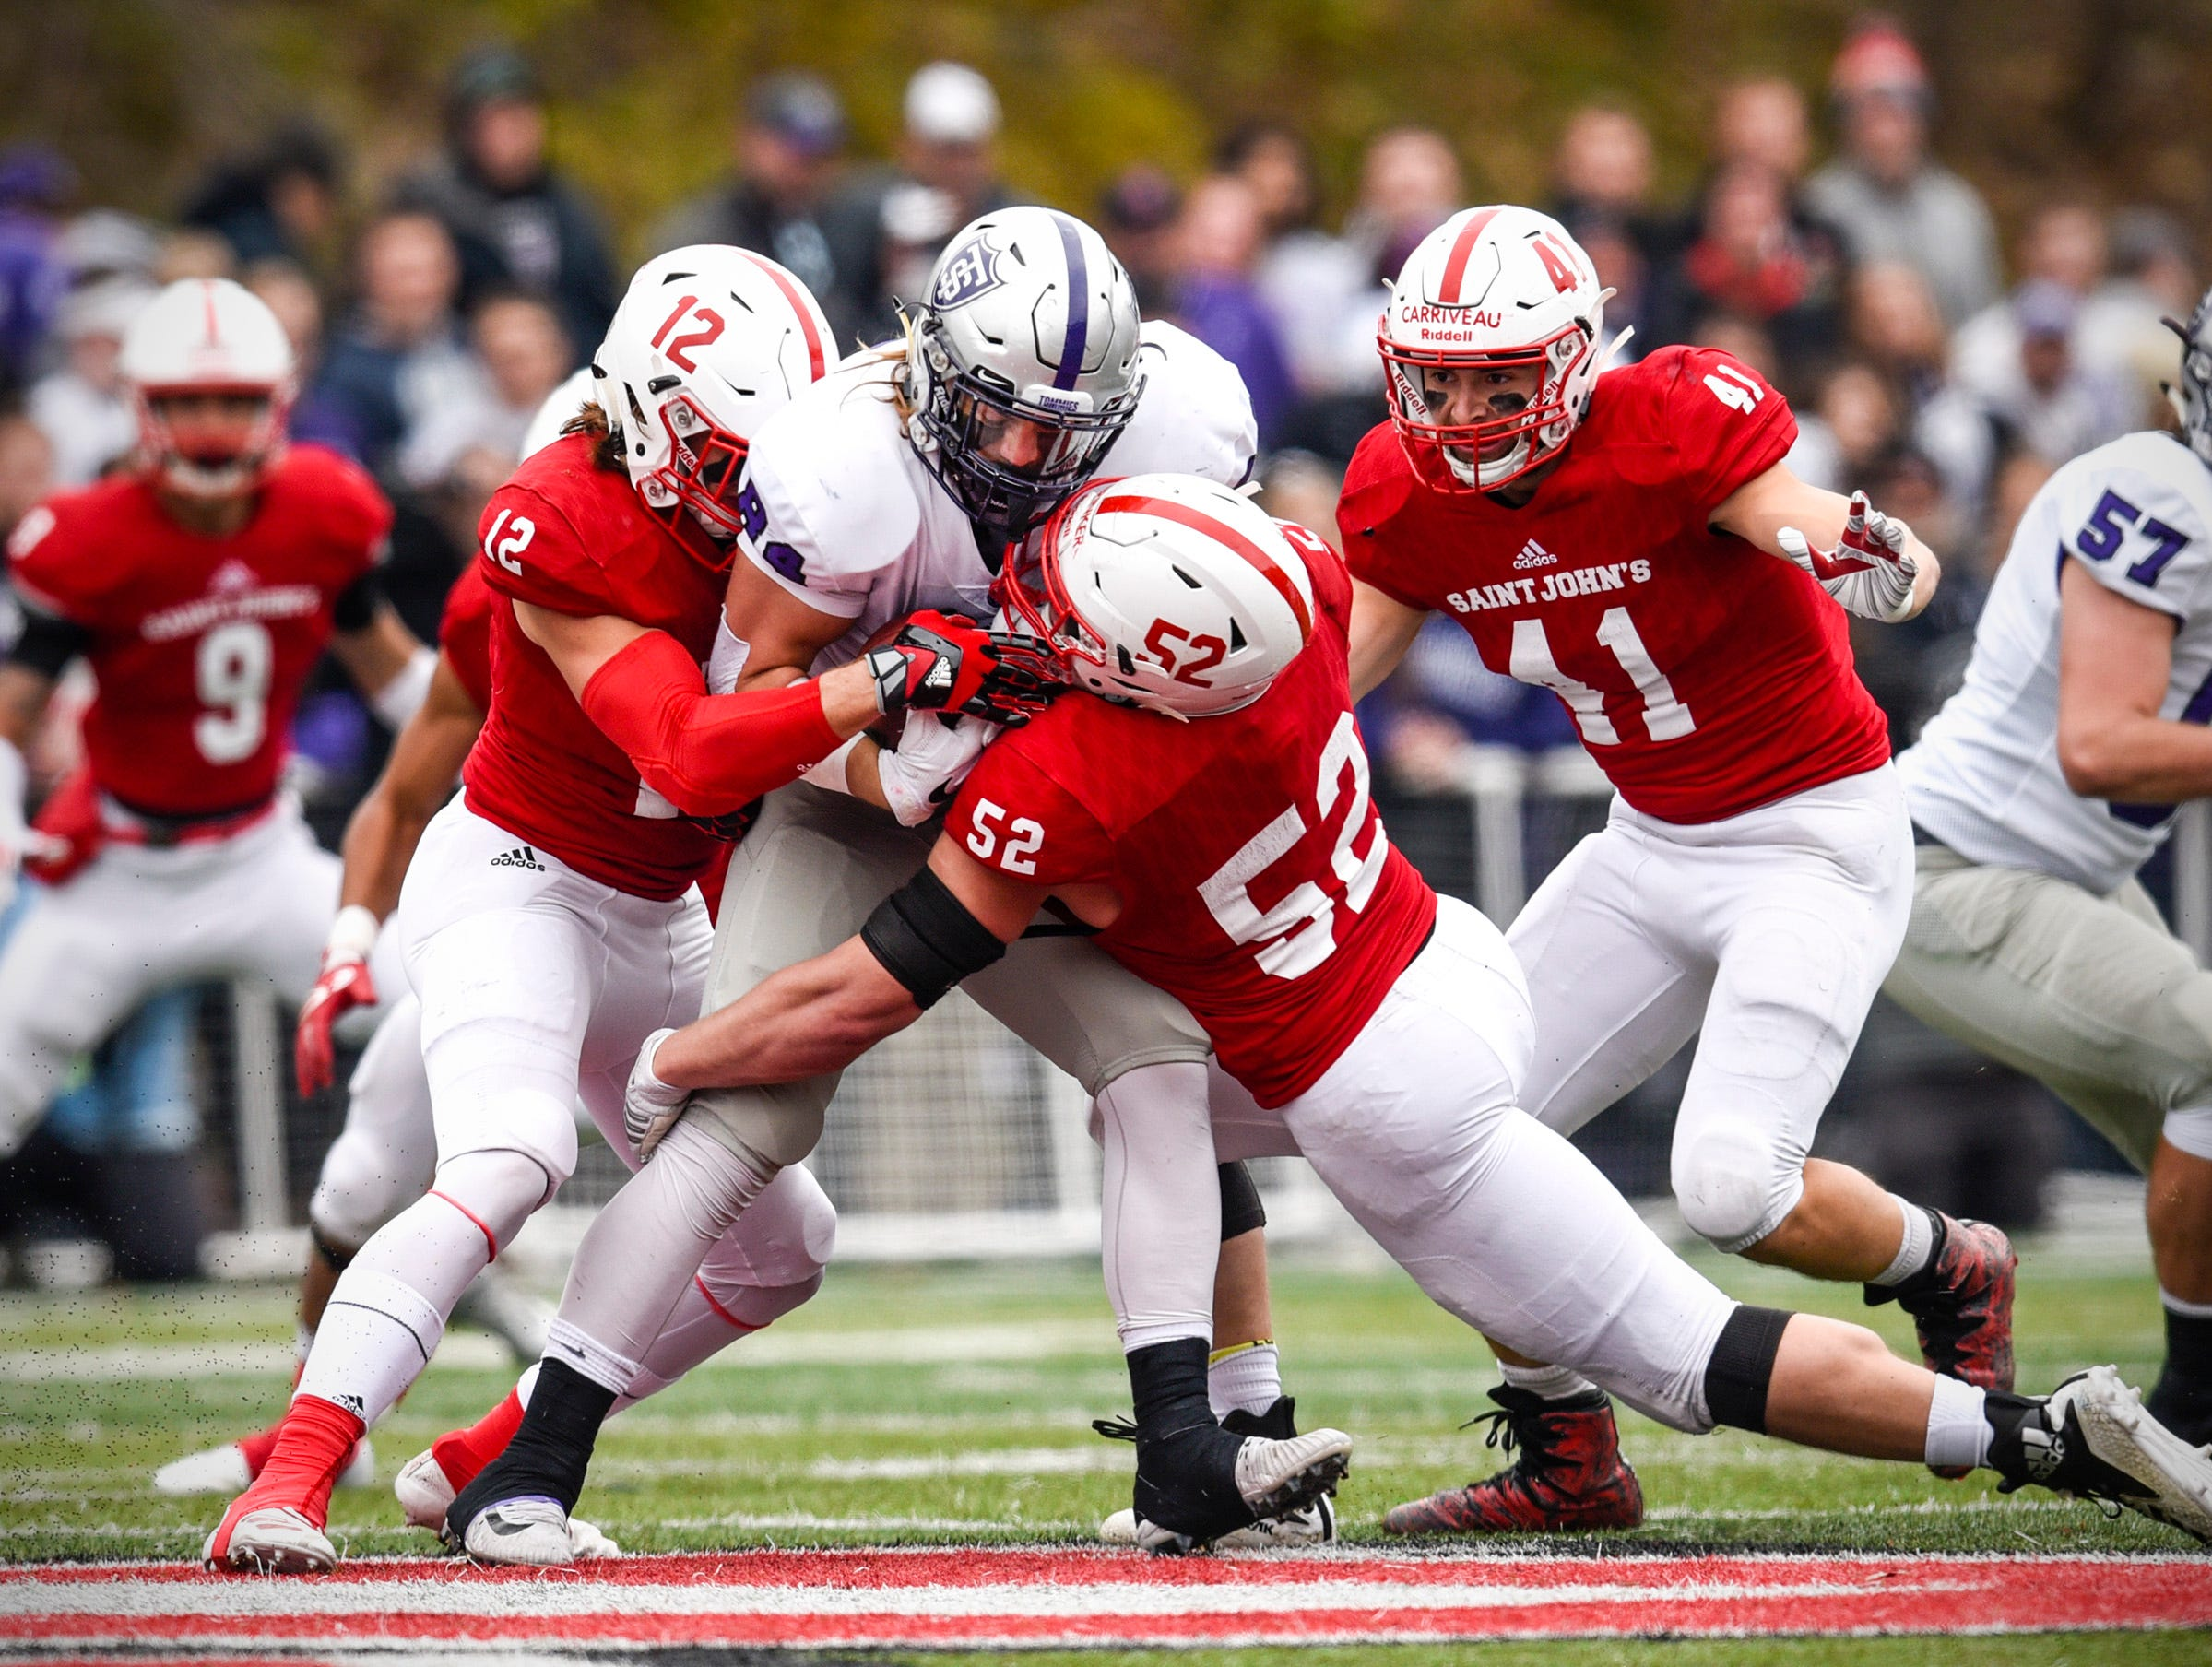 St. John's Ryan LaCasse and Nathan Brinker bring down St. Thomas full back Jack Foley during the first half Saturday, Oct. 13, in Collegeville.